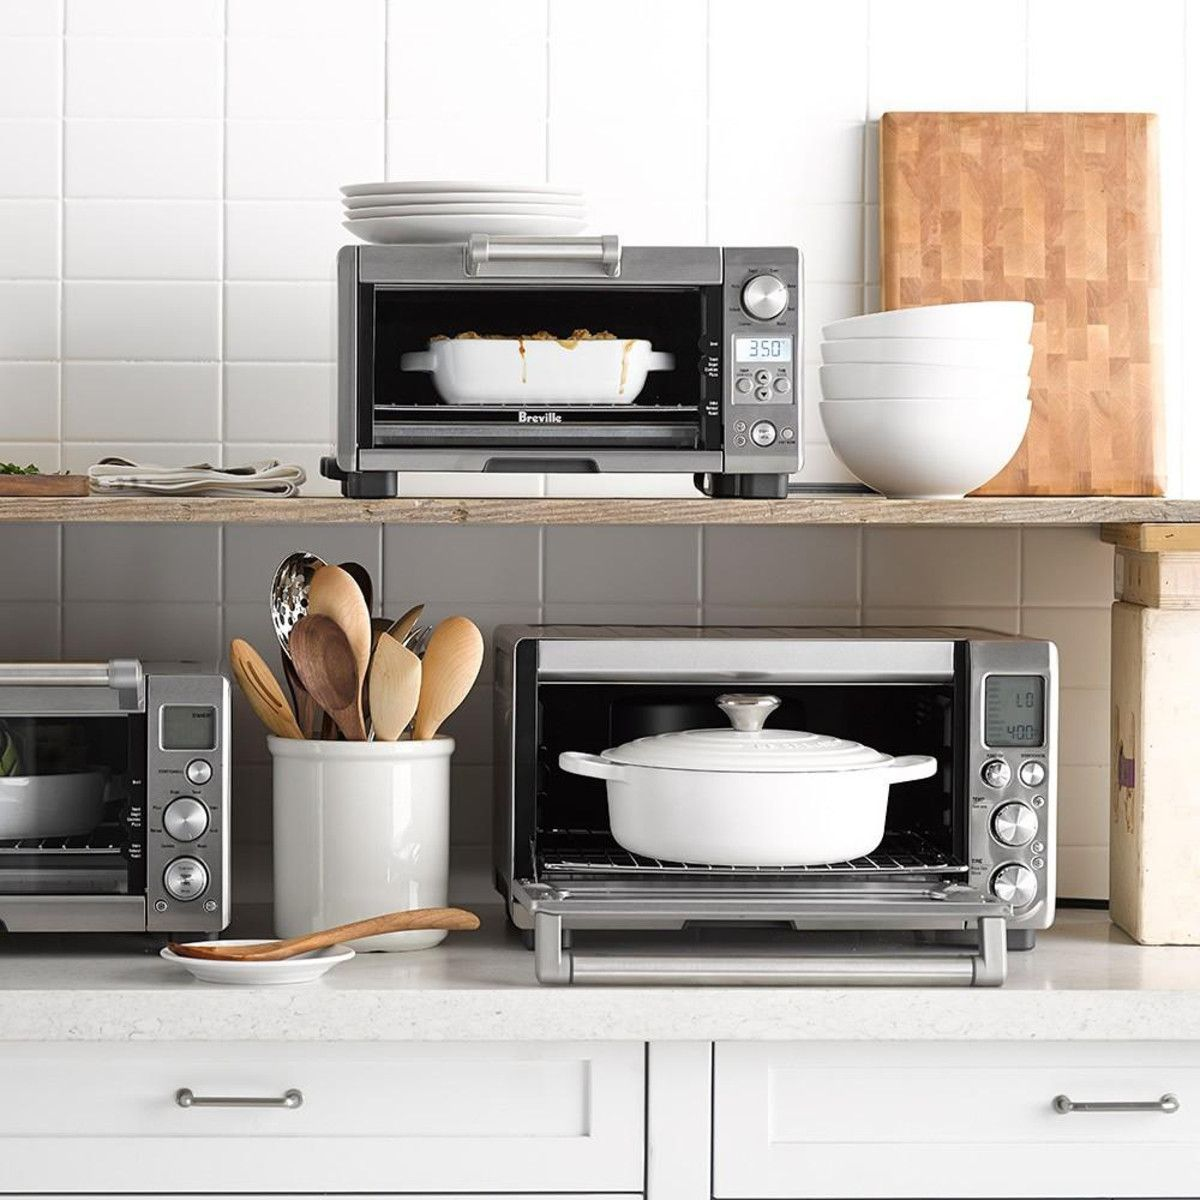 Breville Compact Smart Oven Smart Oven Kitchen